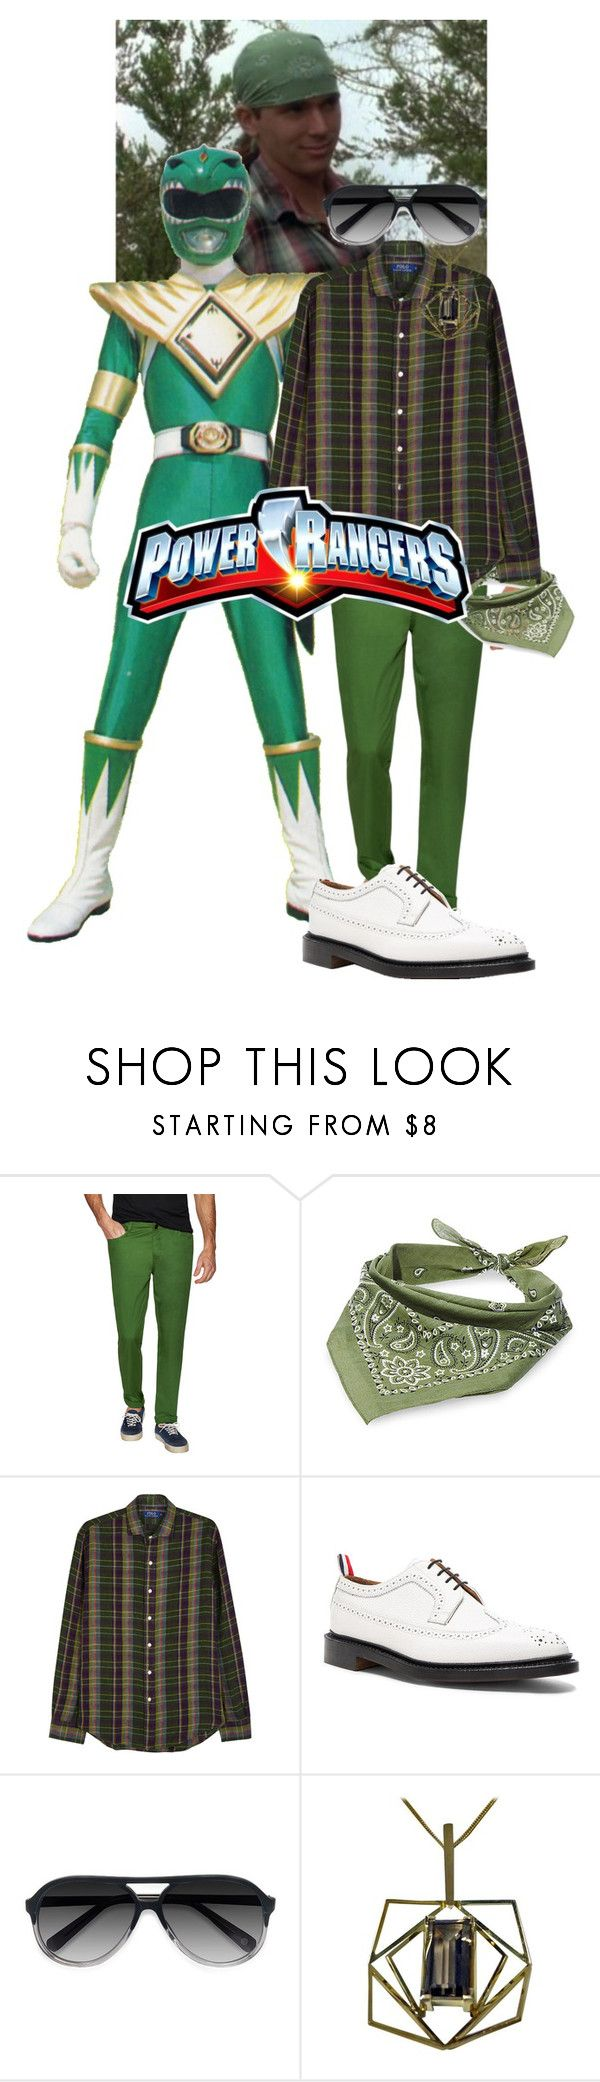 """""""Tom Oliver"""" by minicared ❤ liked on Polyvore featuring ZAK, Steve Madden, Polo Ralph Lauren, Thom Browne, Ace, men's fashion and menswear"""